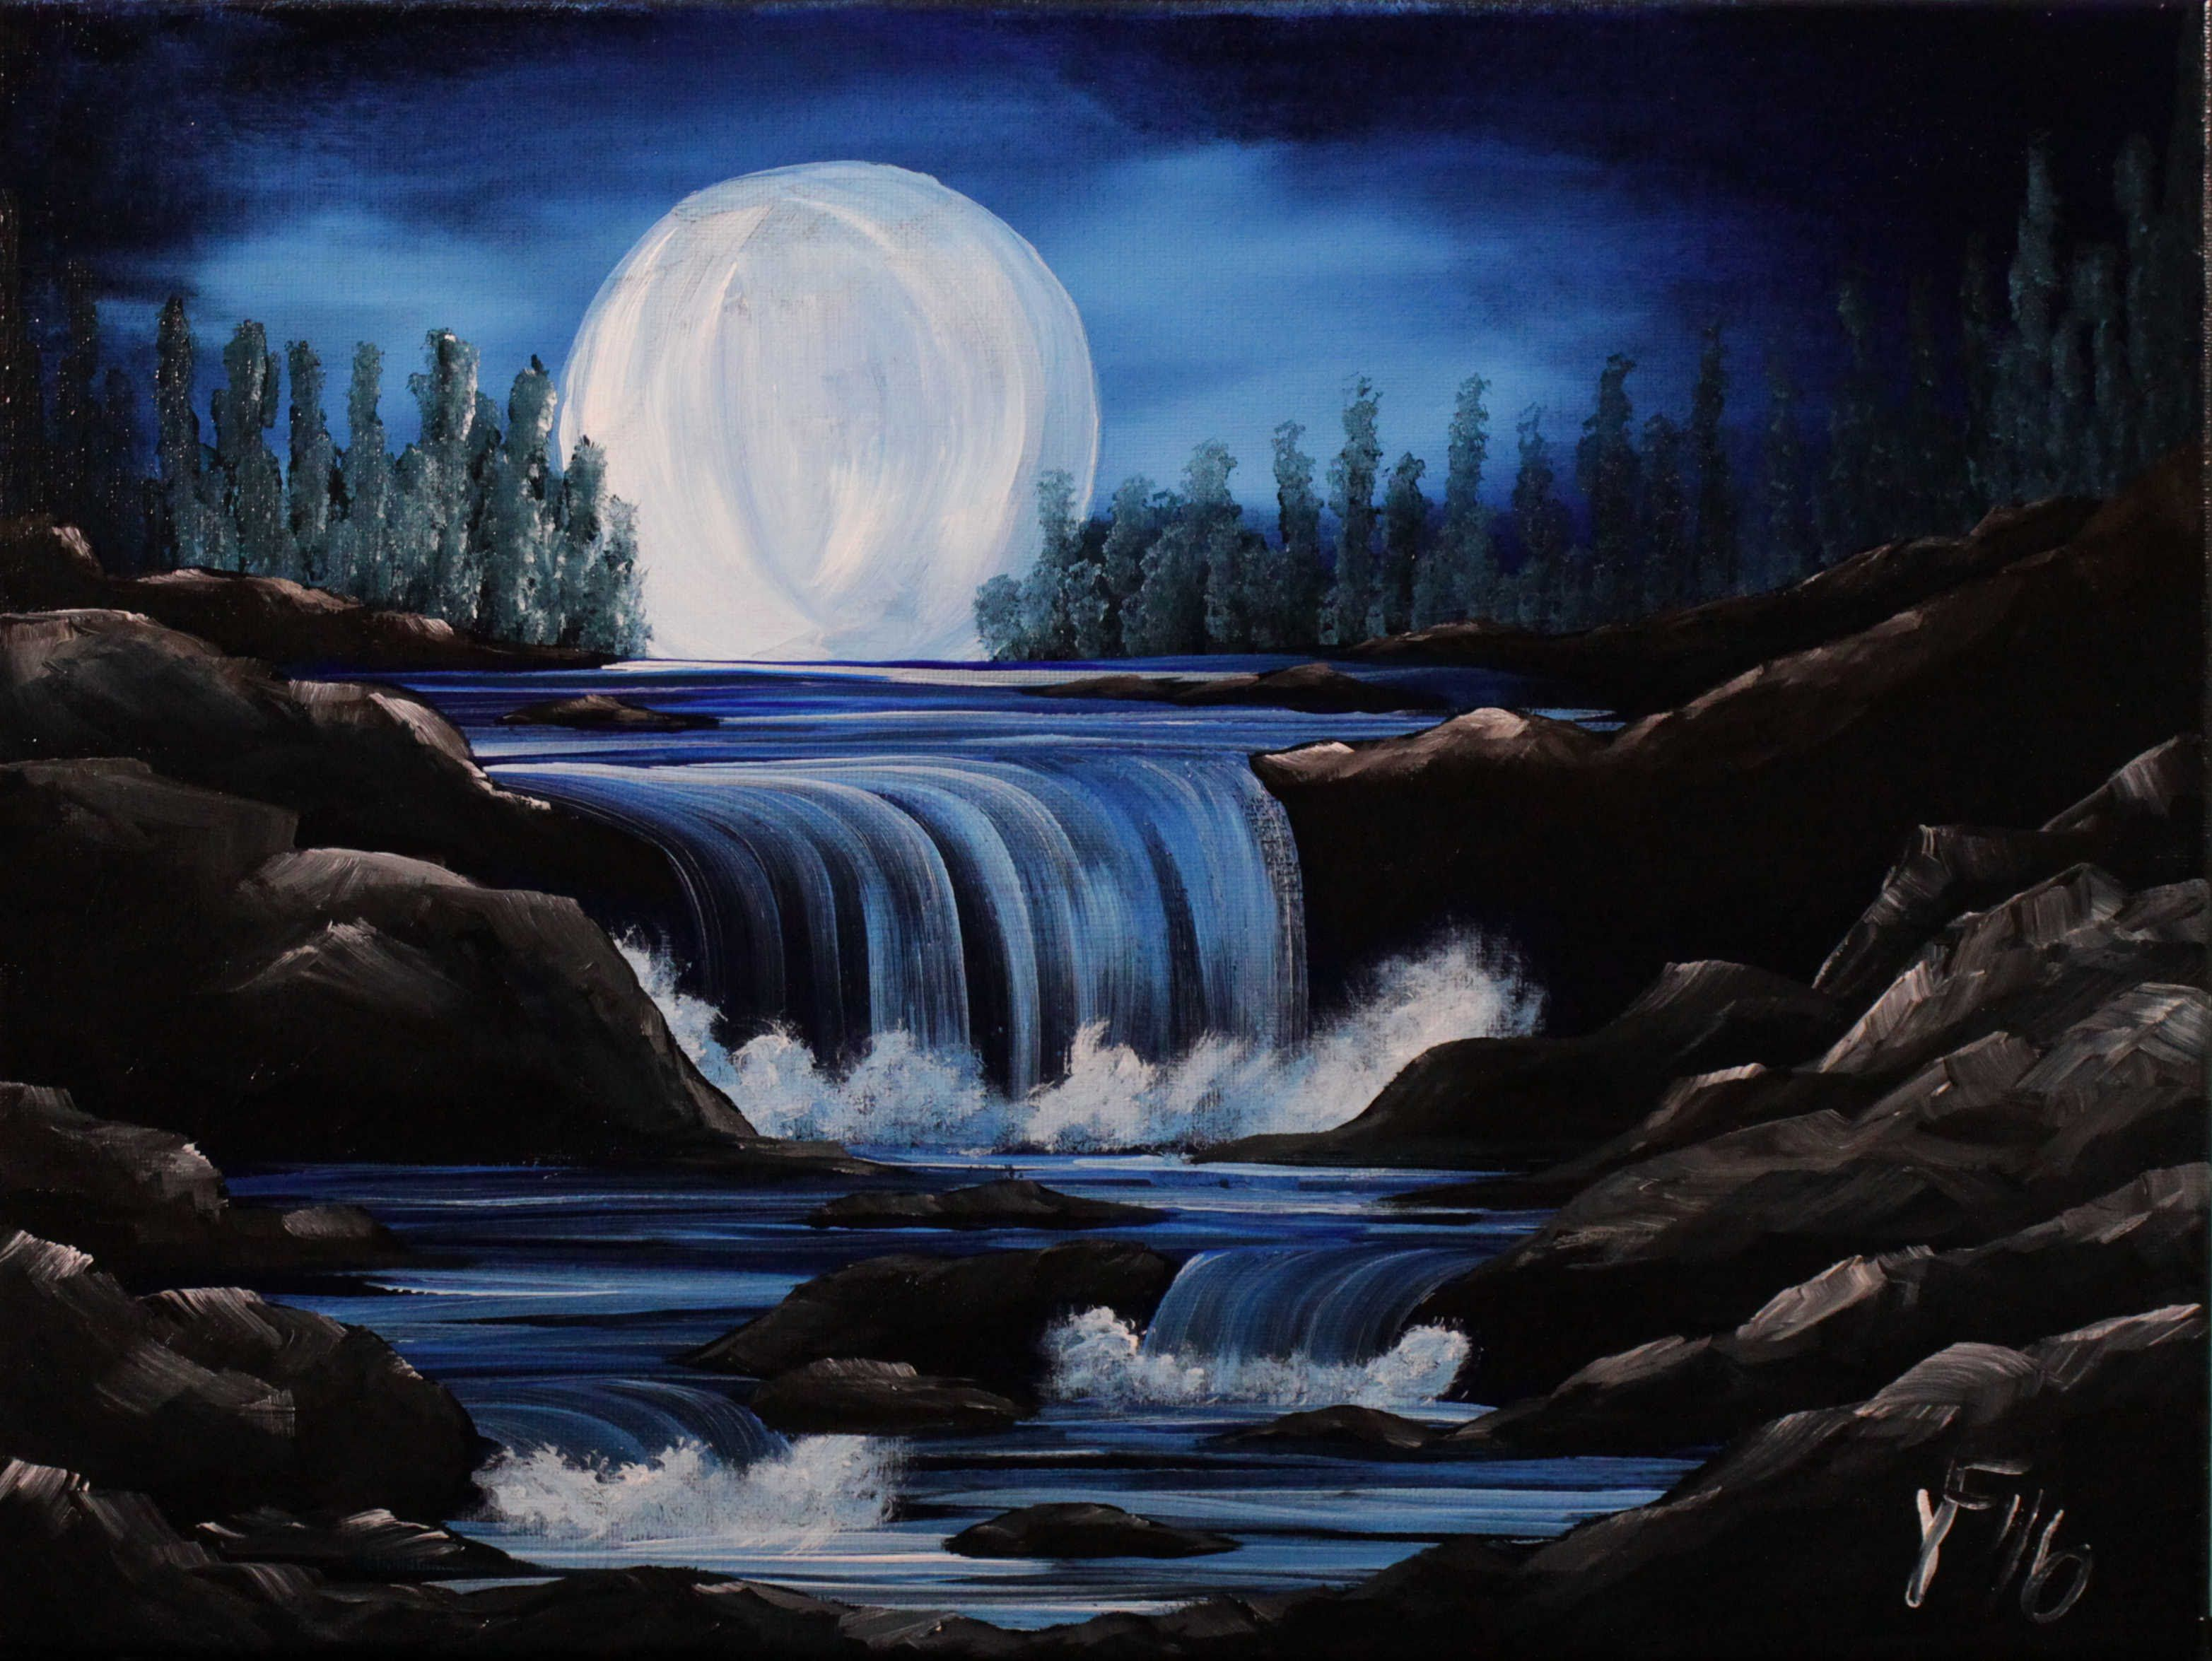 Moon River Step By Step Acrylic Painting On Canvas For Beginners Landscape Painting Lesson Acrylic Painting Canvas Night Painting